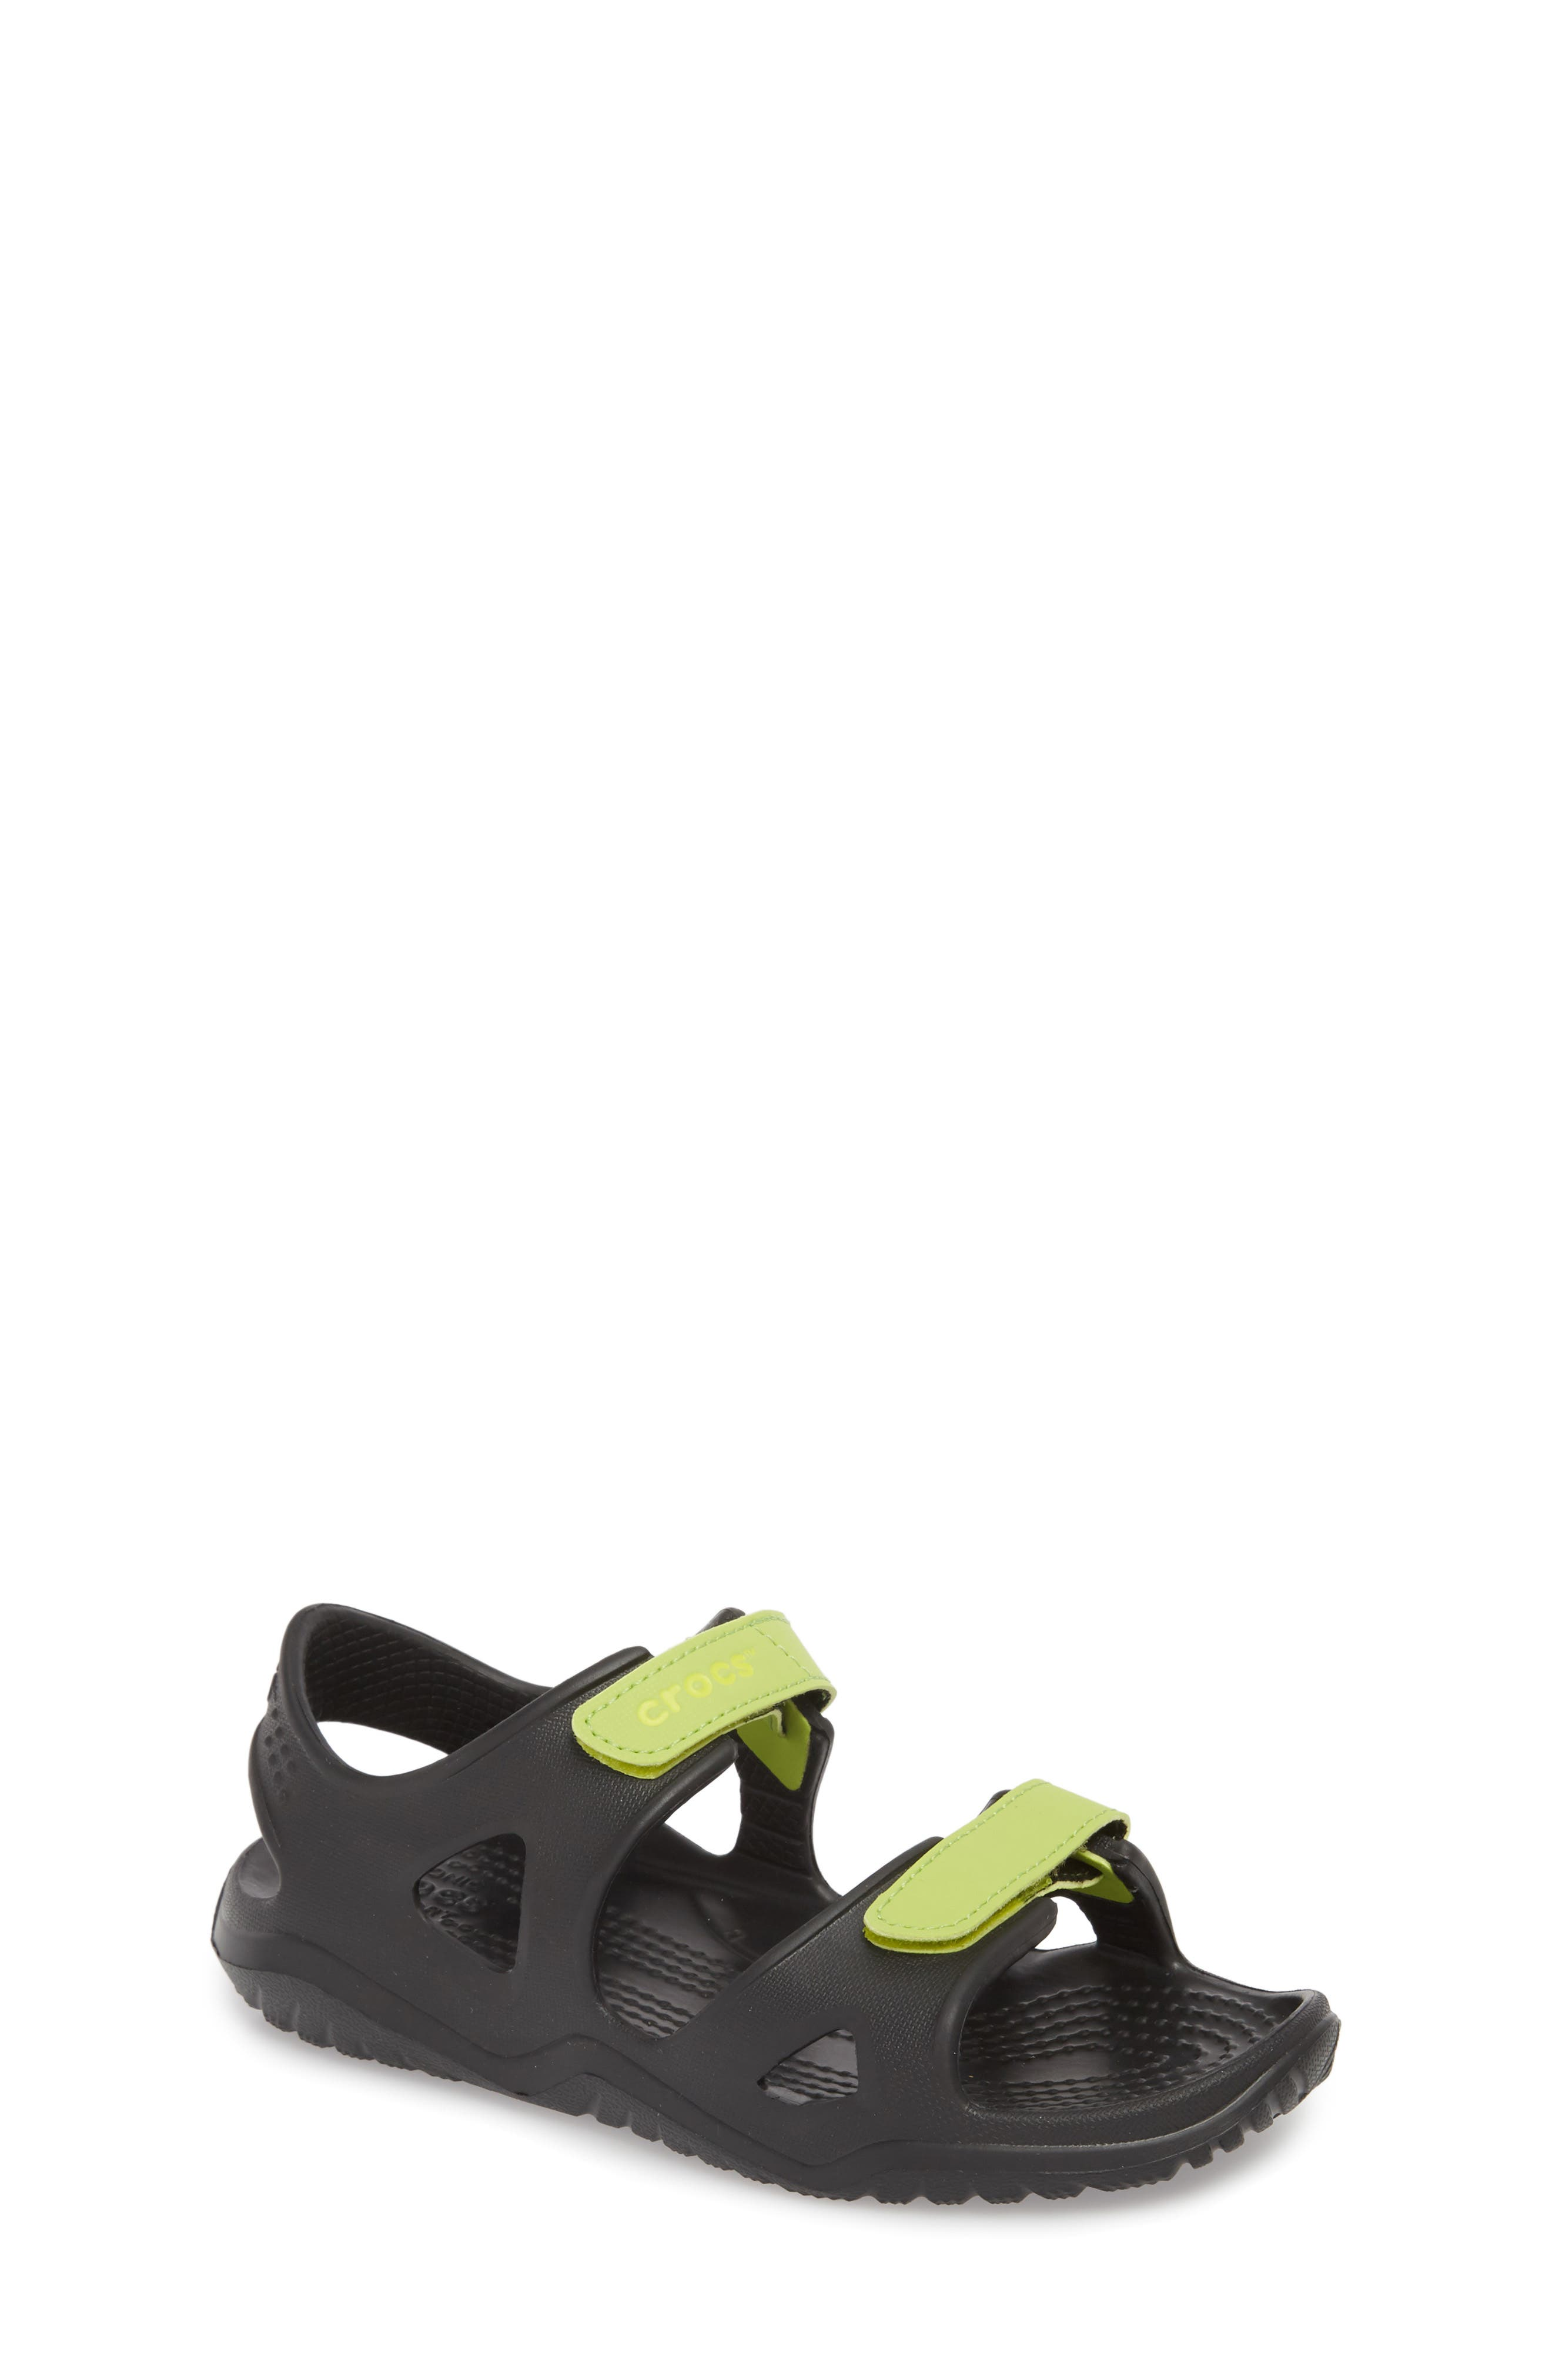 Swiftwater River Sandal,                         Main,                         color, 012